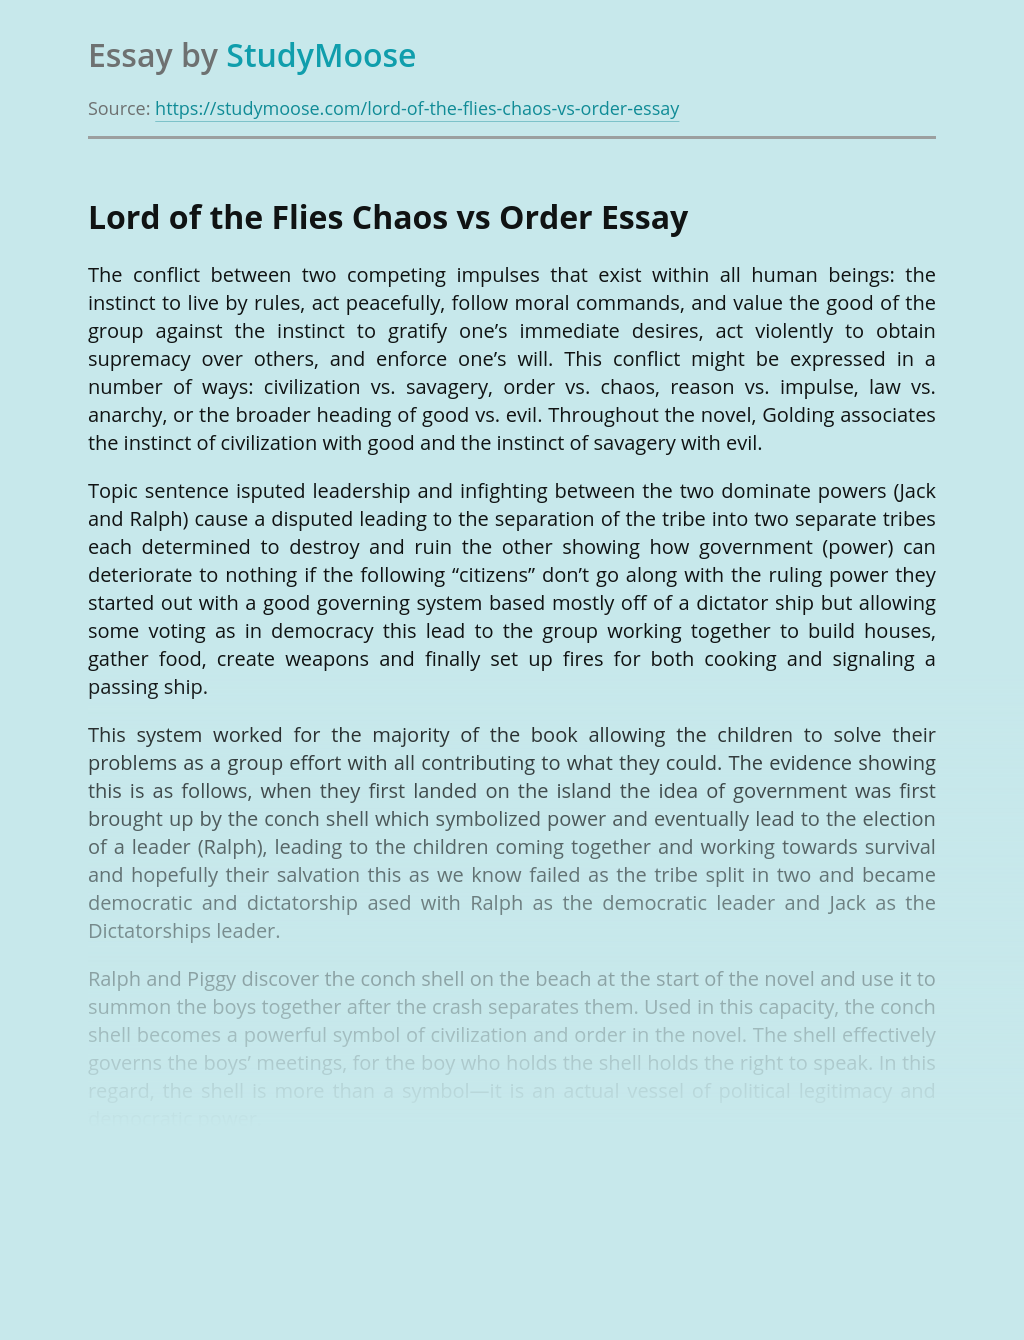 Lord of the Flies Chaos vs Order